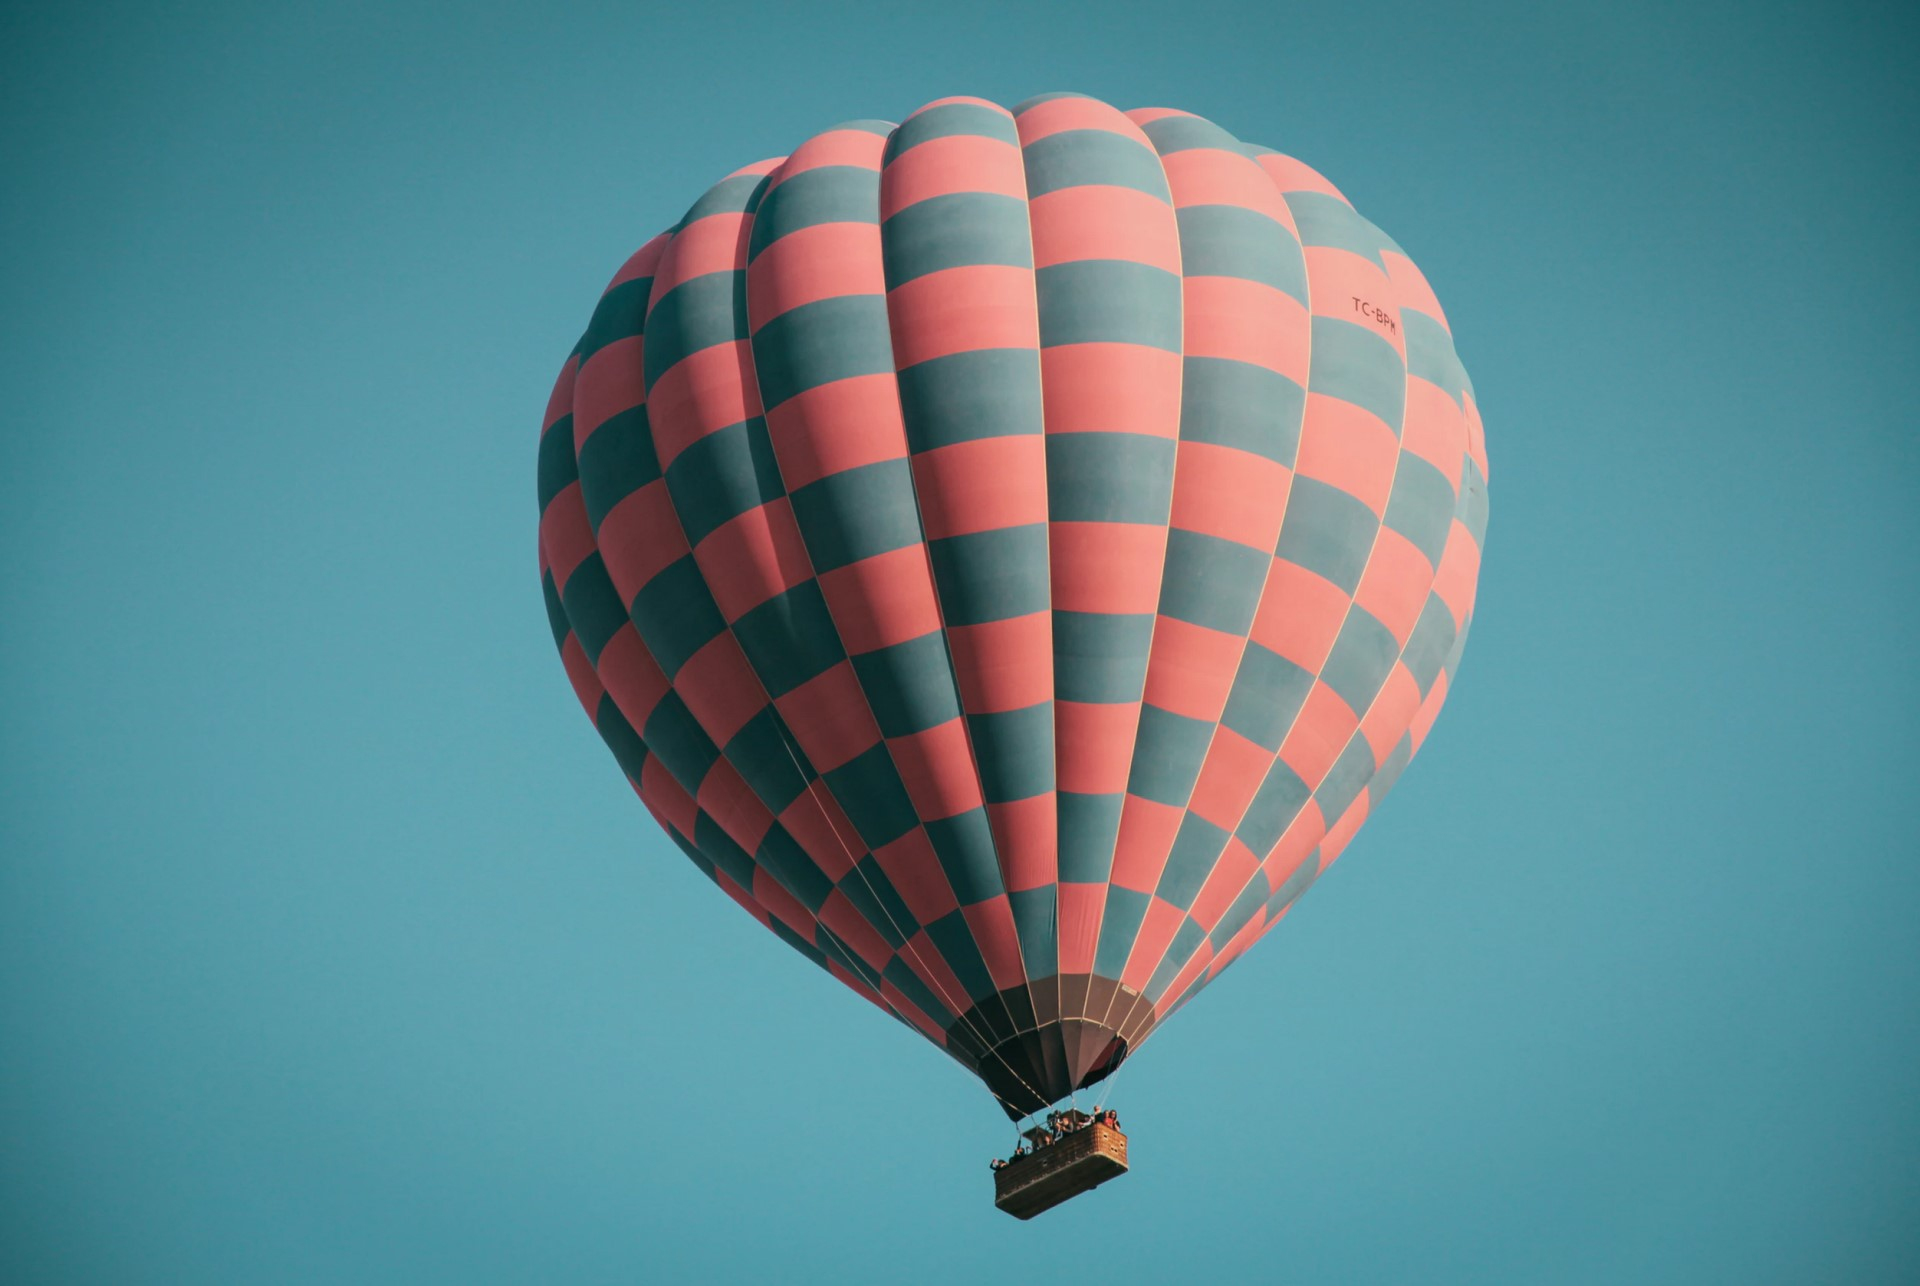 Hot Air Balloon Ride in The Algarve, Portugal